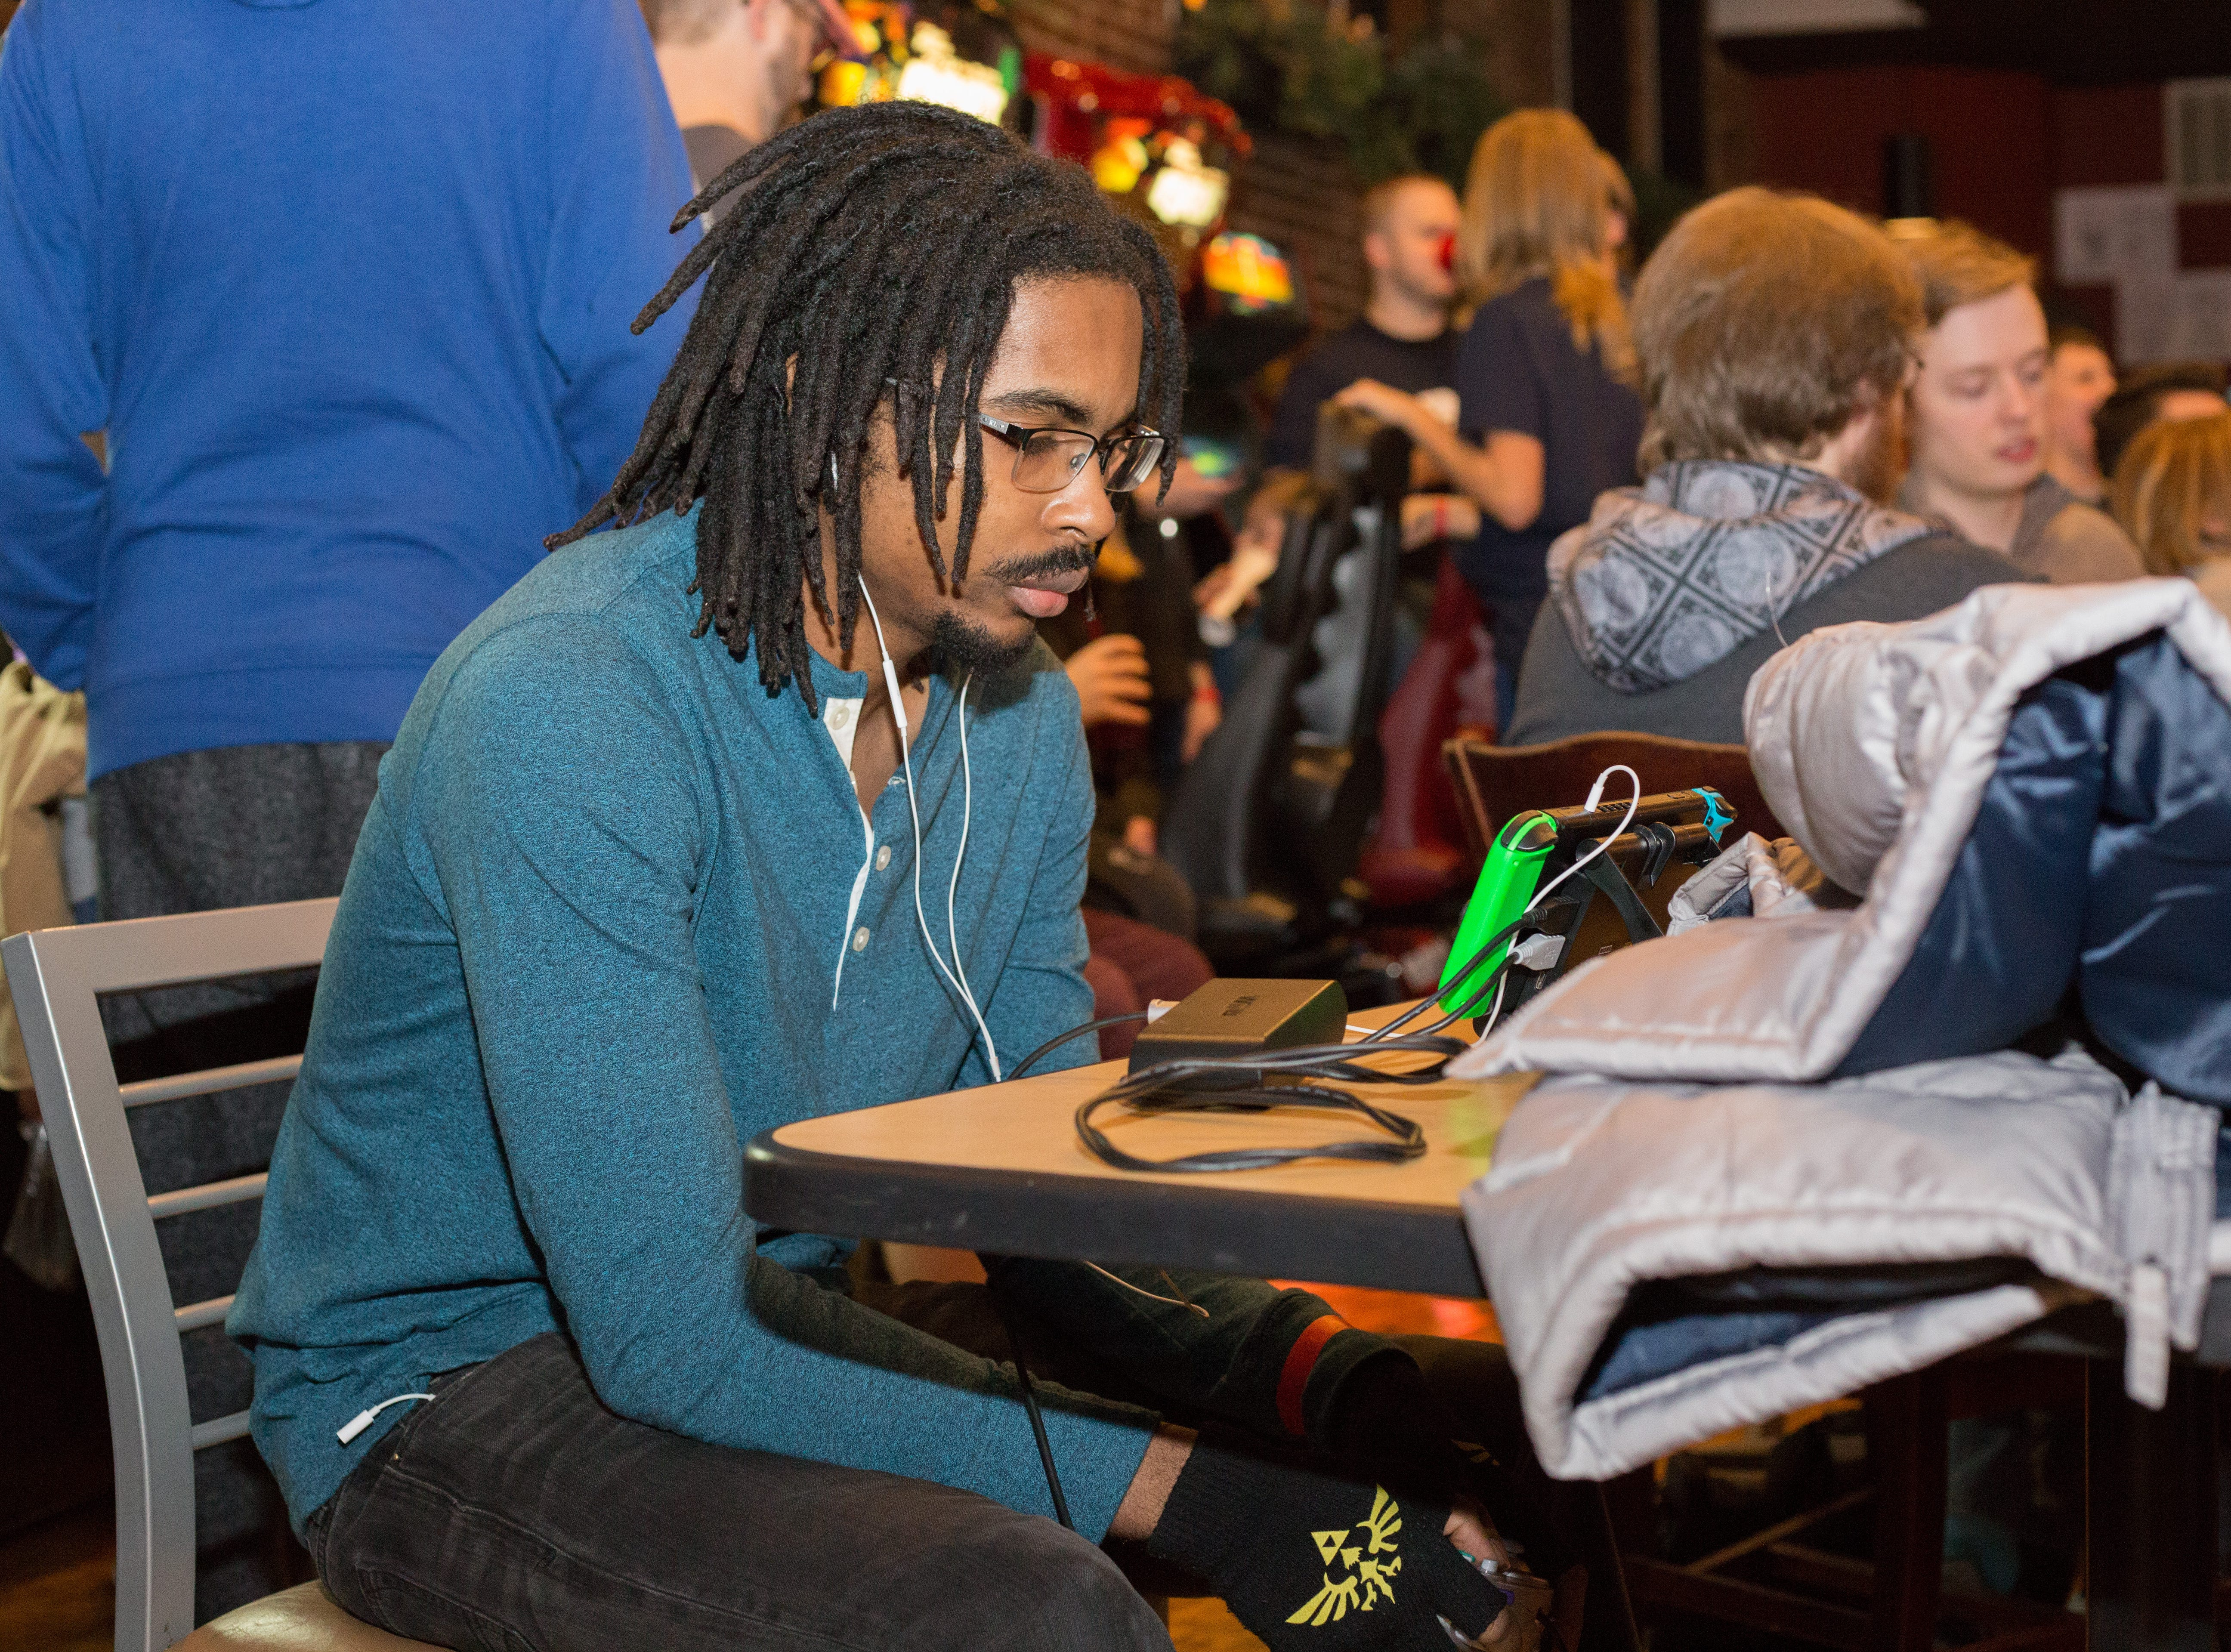 Andrew Reid plays at his table during a Super Smash Brothers Ultimate Tournament presented by Big Dad Games at Filly's Game and Grill in Gallatin on Monday, Jan 14.